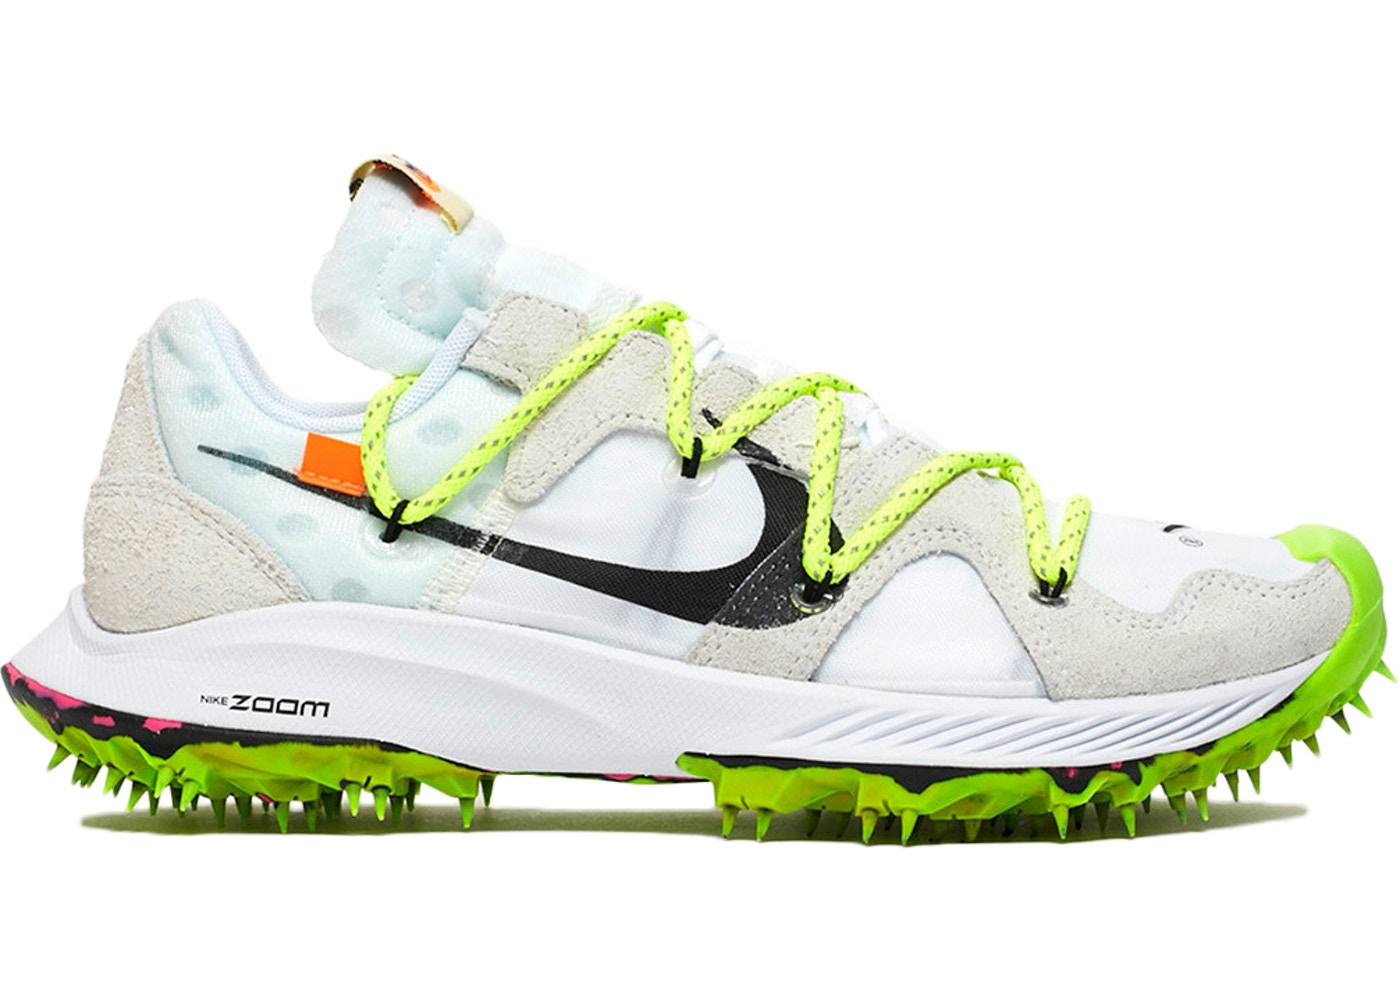 20f2b949ce3 StockX: Buy and Sell Sneakers, Streetwear, Handbags, Watches